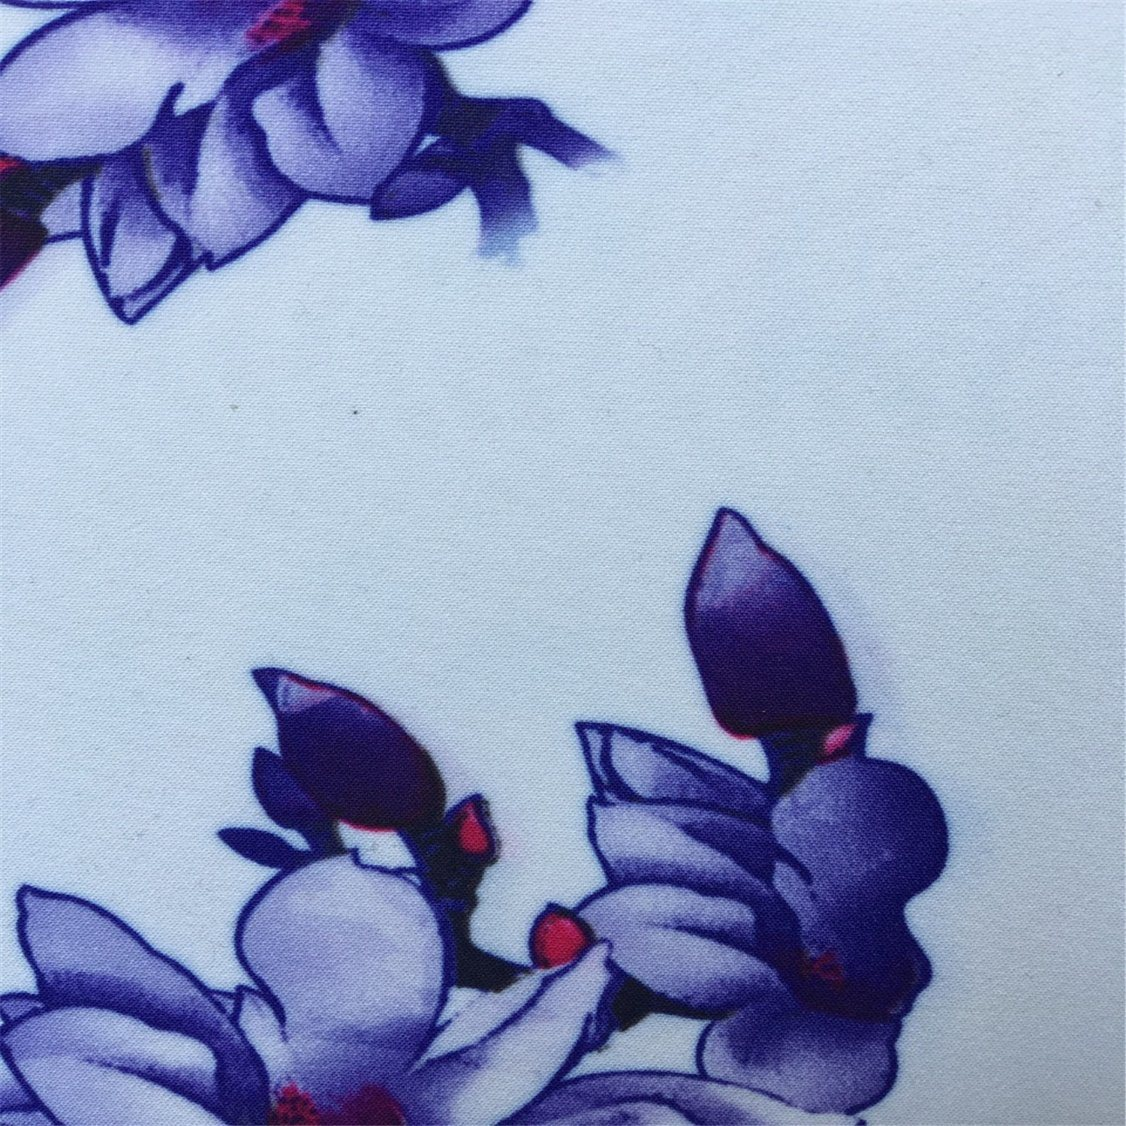 Polyester 4-Way Stretch Fabric with Digital Printing, Women′s Dress, Clothing, Garment Fabric